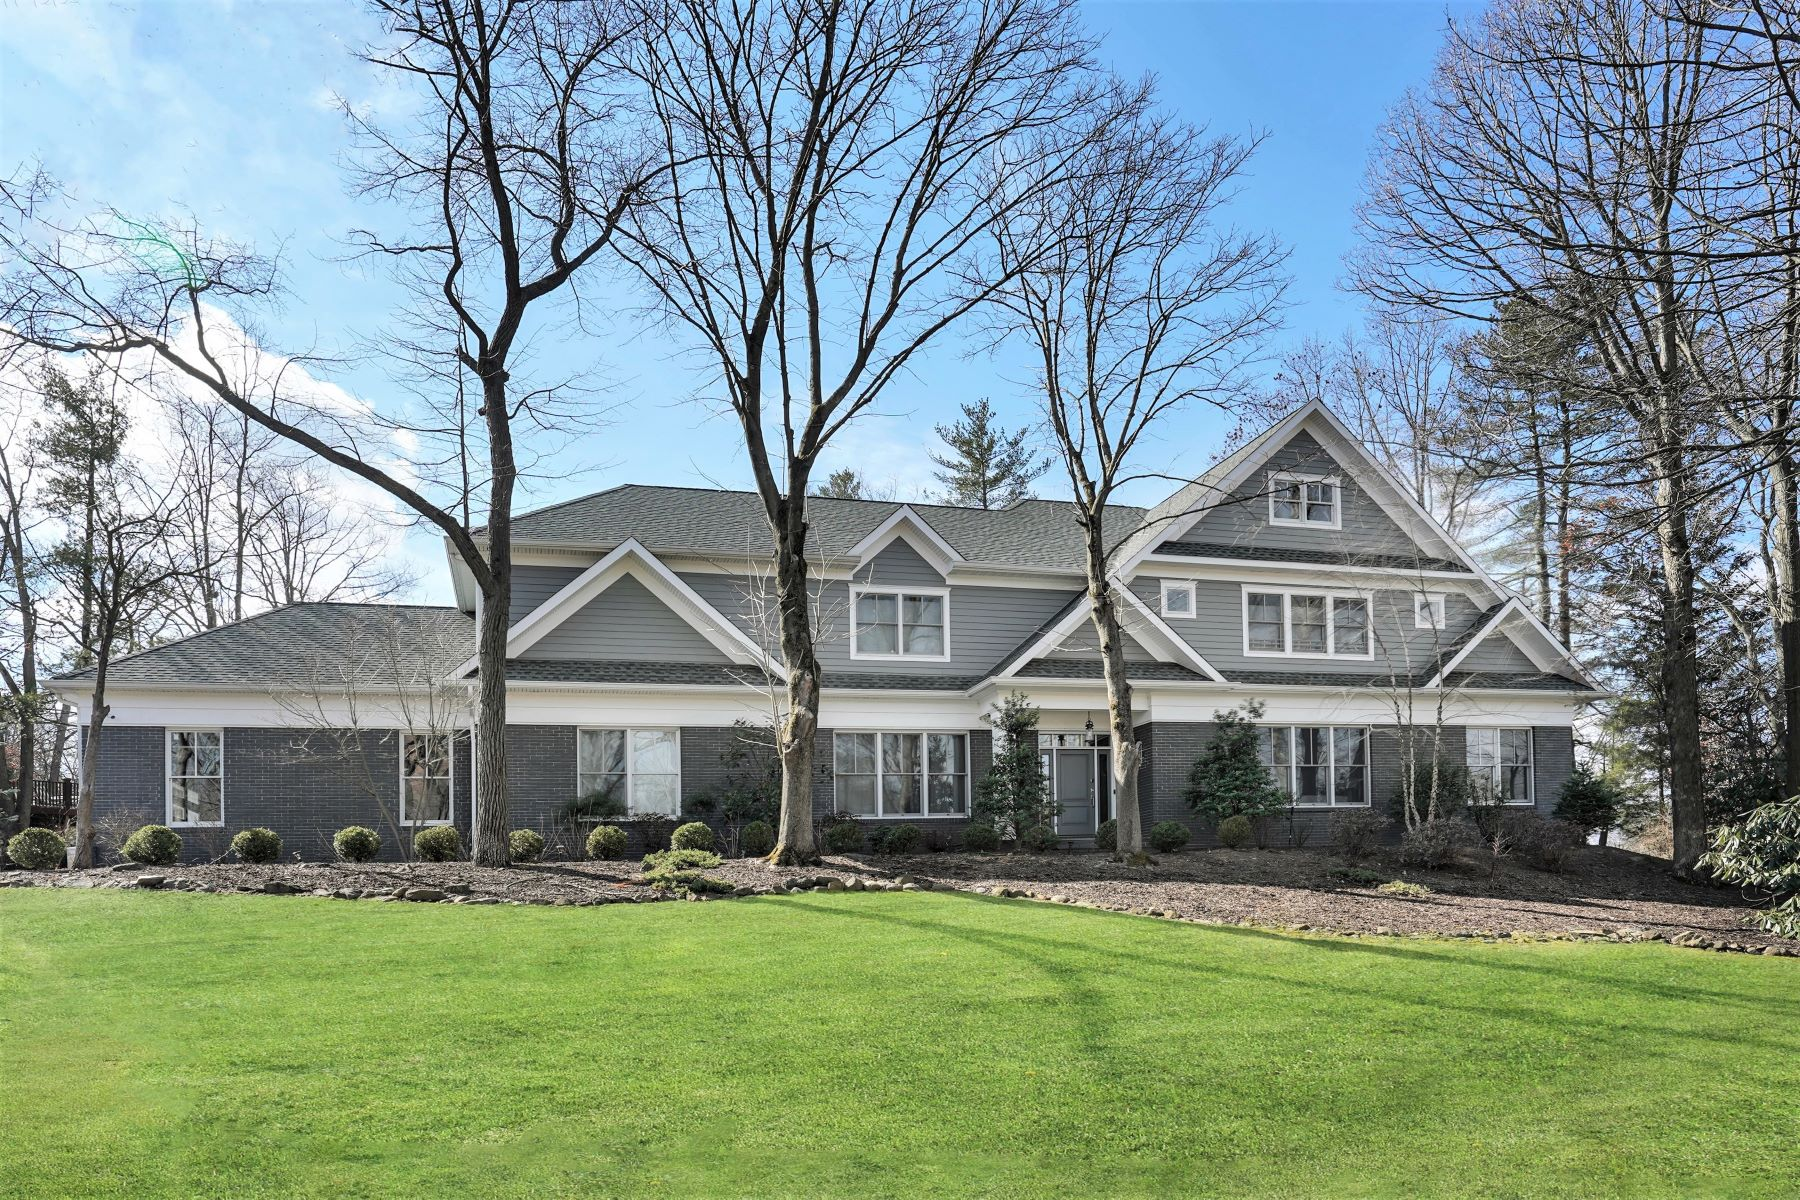 Single Family Homes for Sale at Modern and Chic 25 Lawrence Drive Short Hills, New Jersey 07078 United States